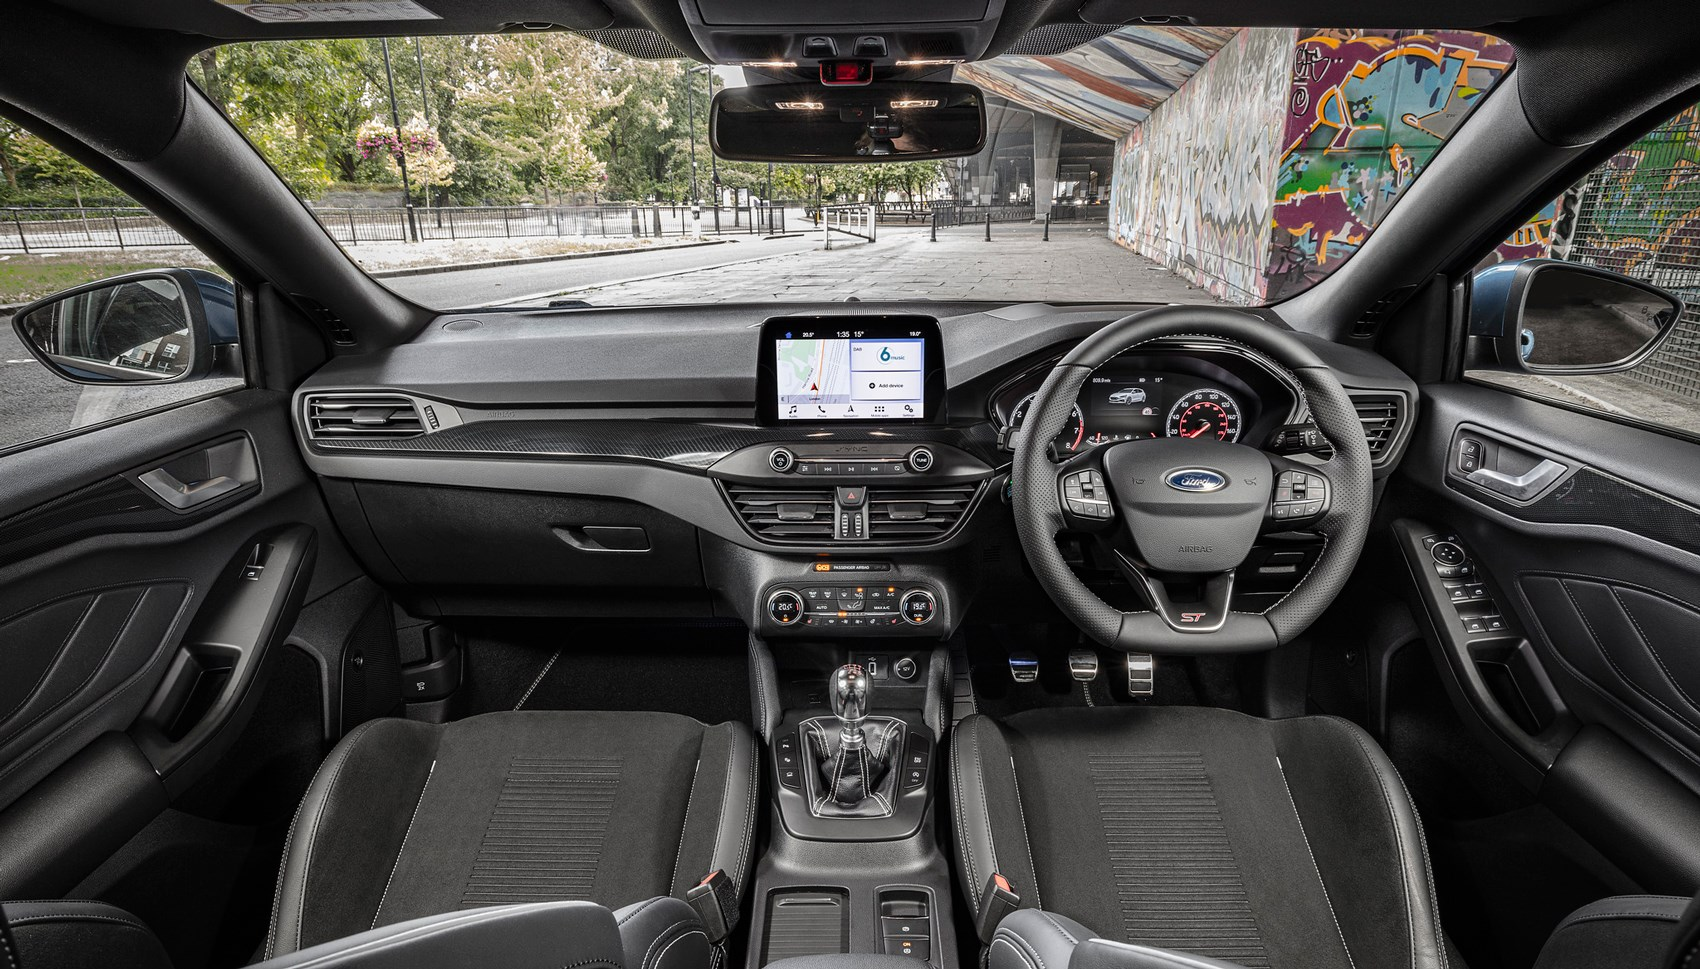 Ford Focus ST UK interior